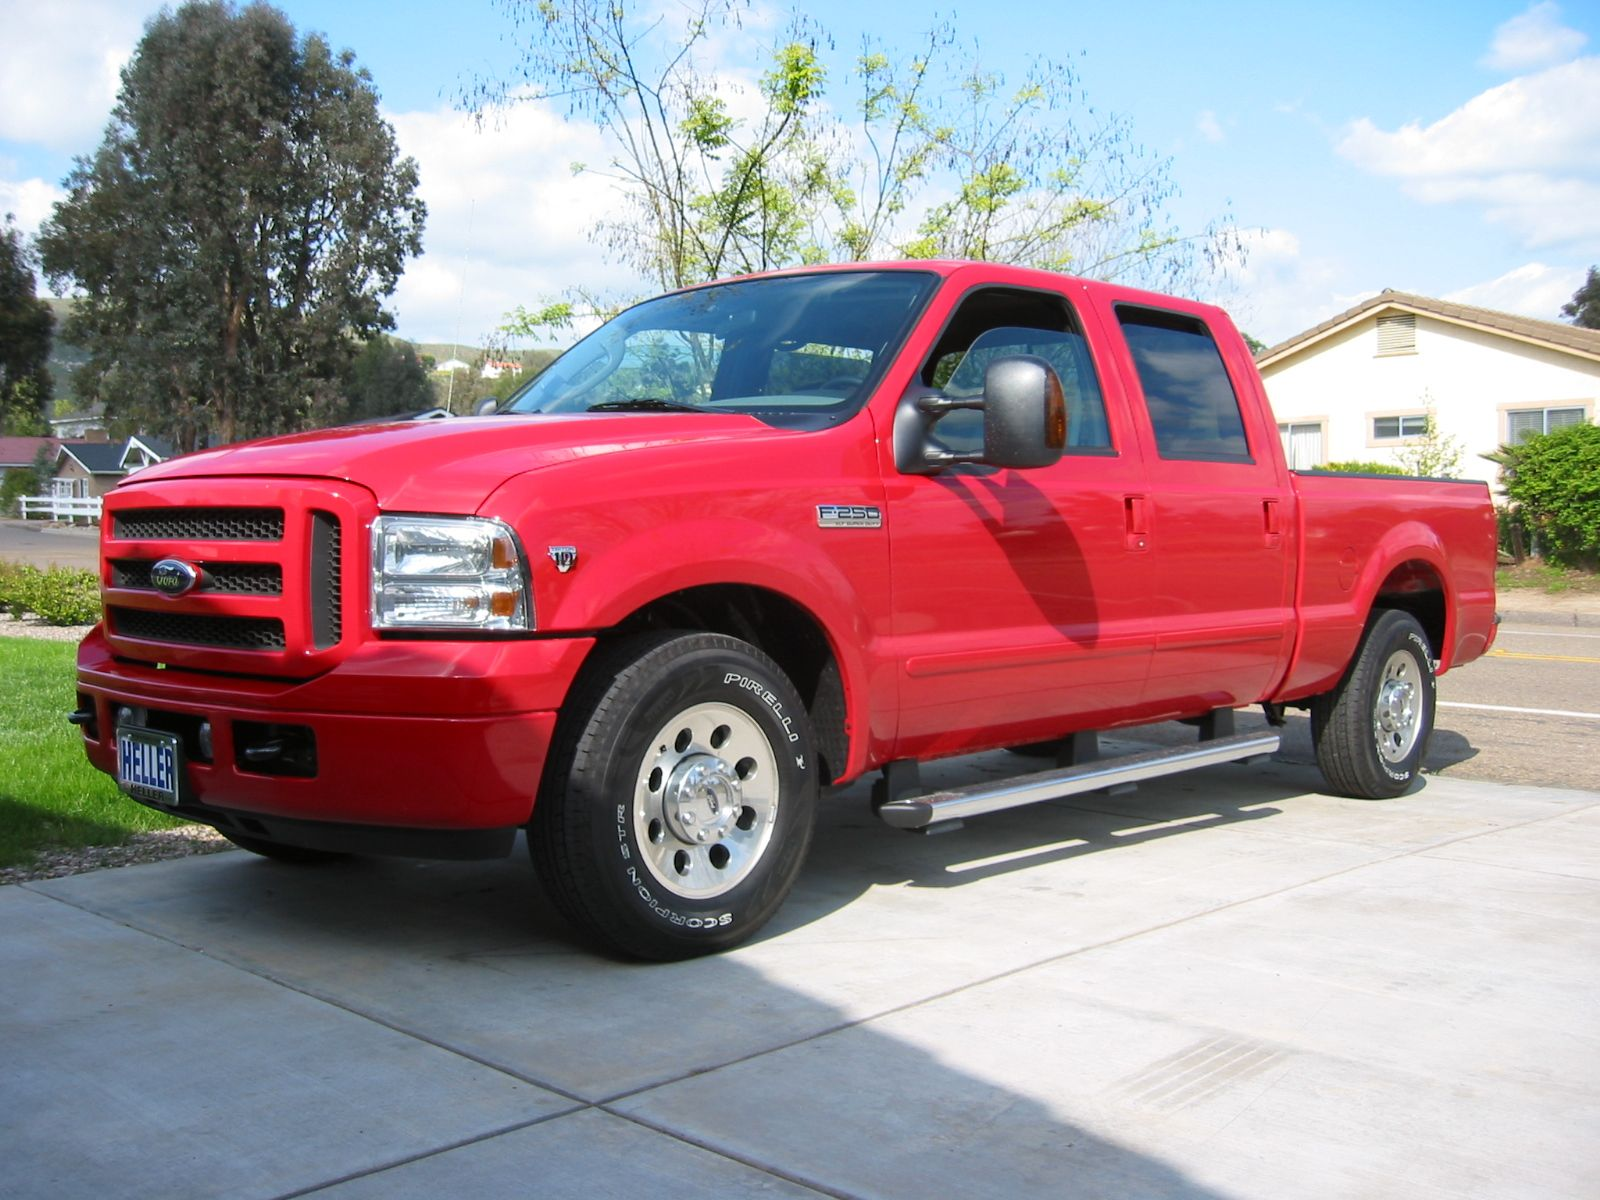 Red Ford F-25- trucks Ford Owners Manual, Bed Length, Gasoline Engine